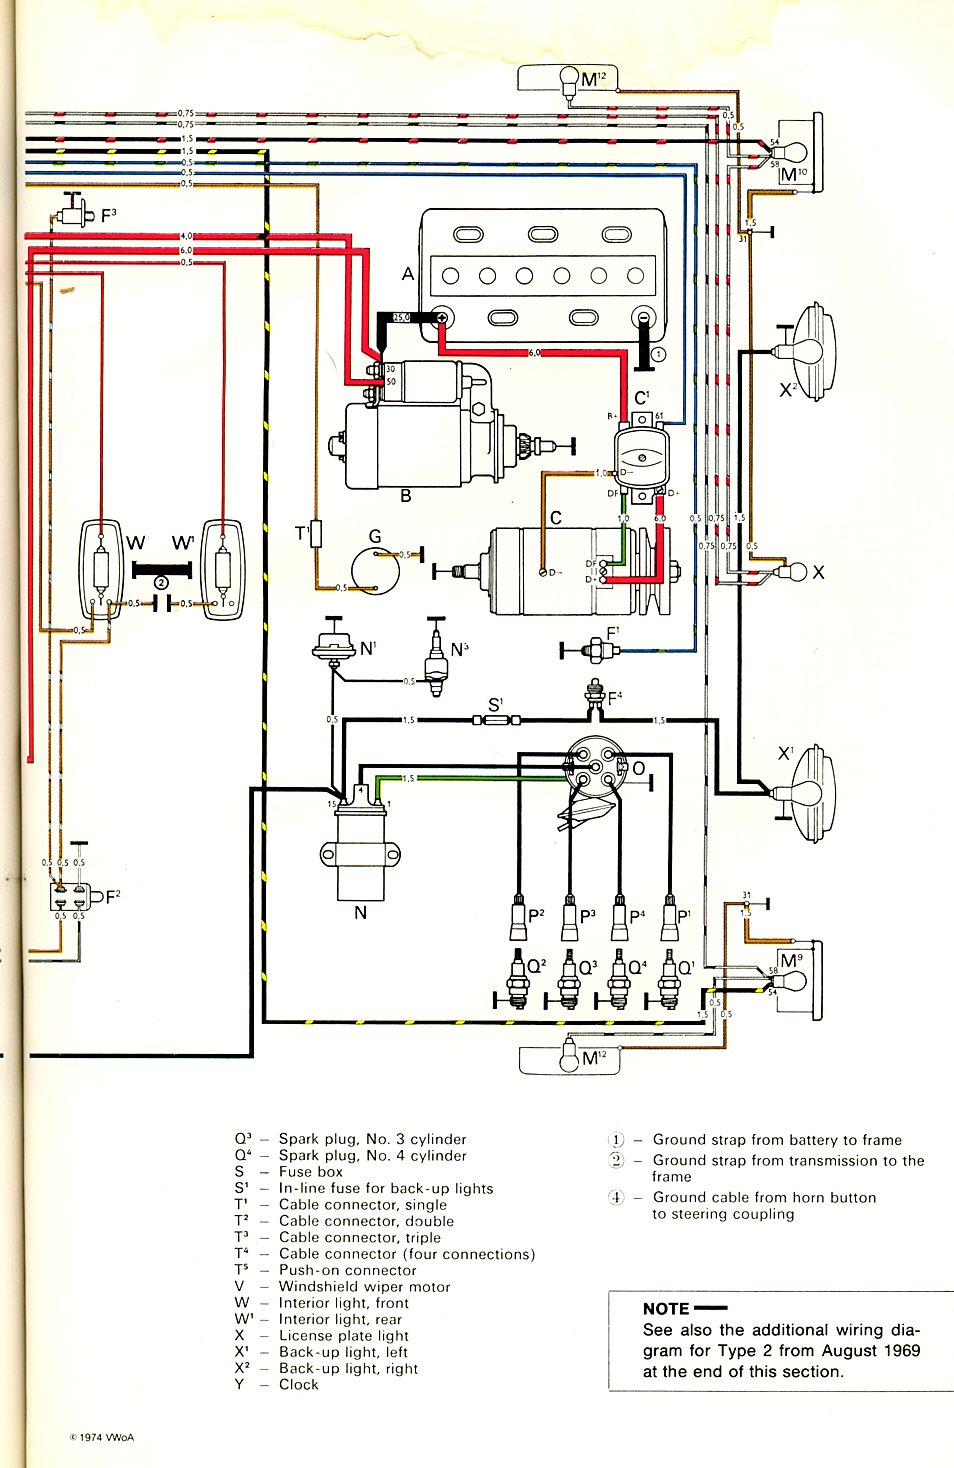 baybus_70b thesamba com type 2 wiring diagrams Electrical Wiring Diagrams at alyssarenee.co